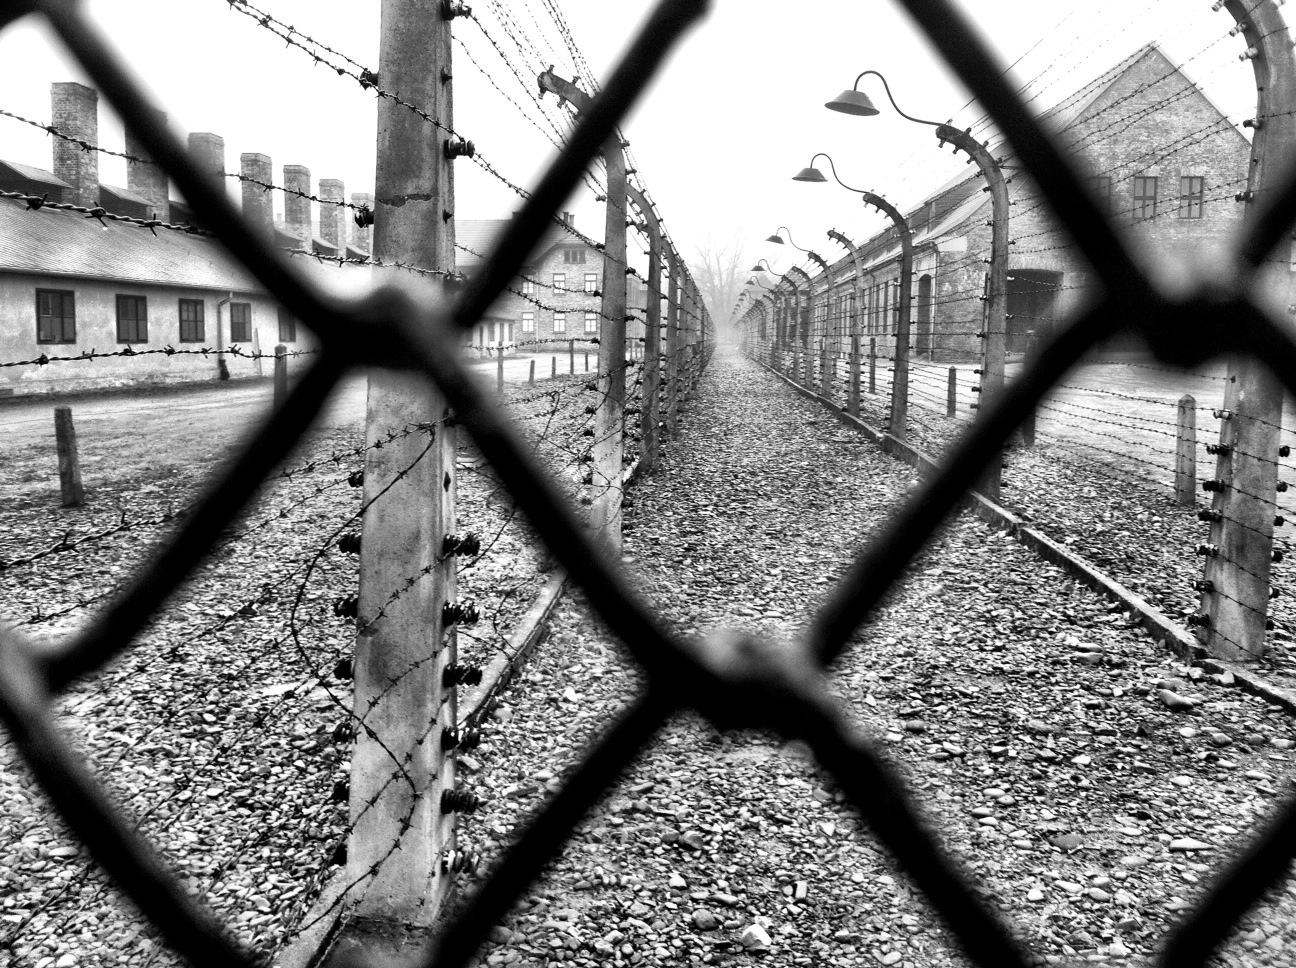 The Death Camps of Auschwitz I and Auschwitz II-Birkenau